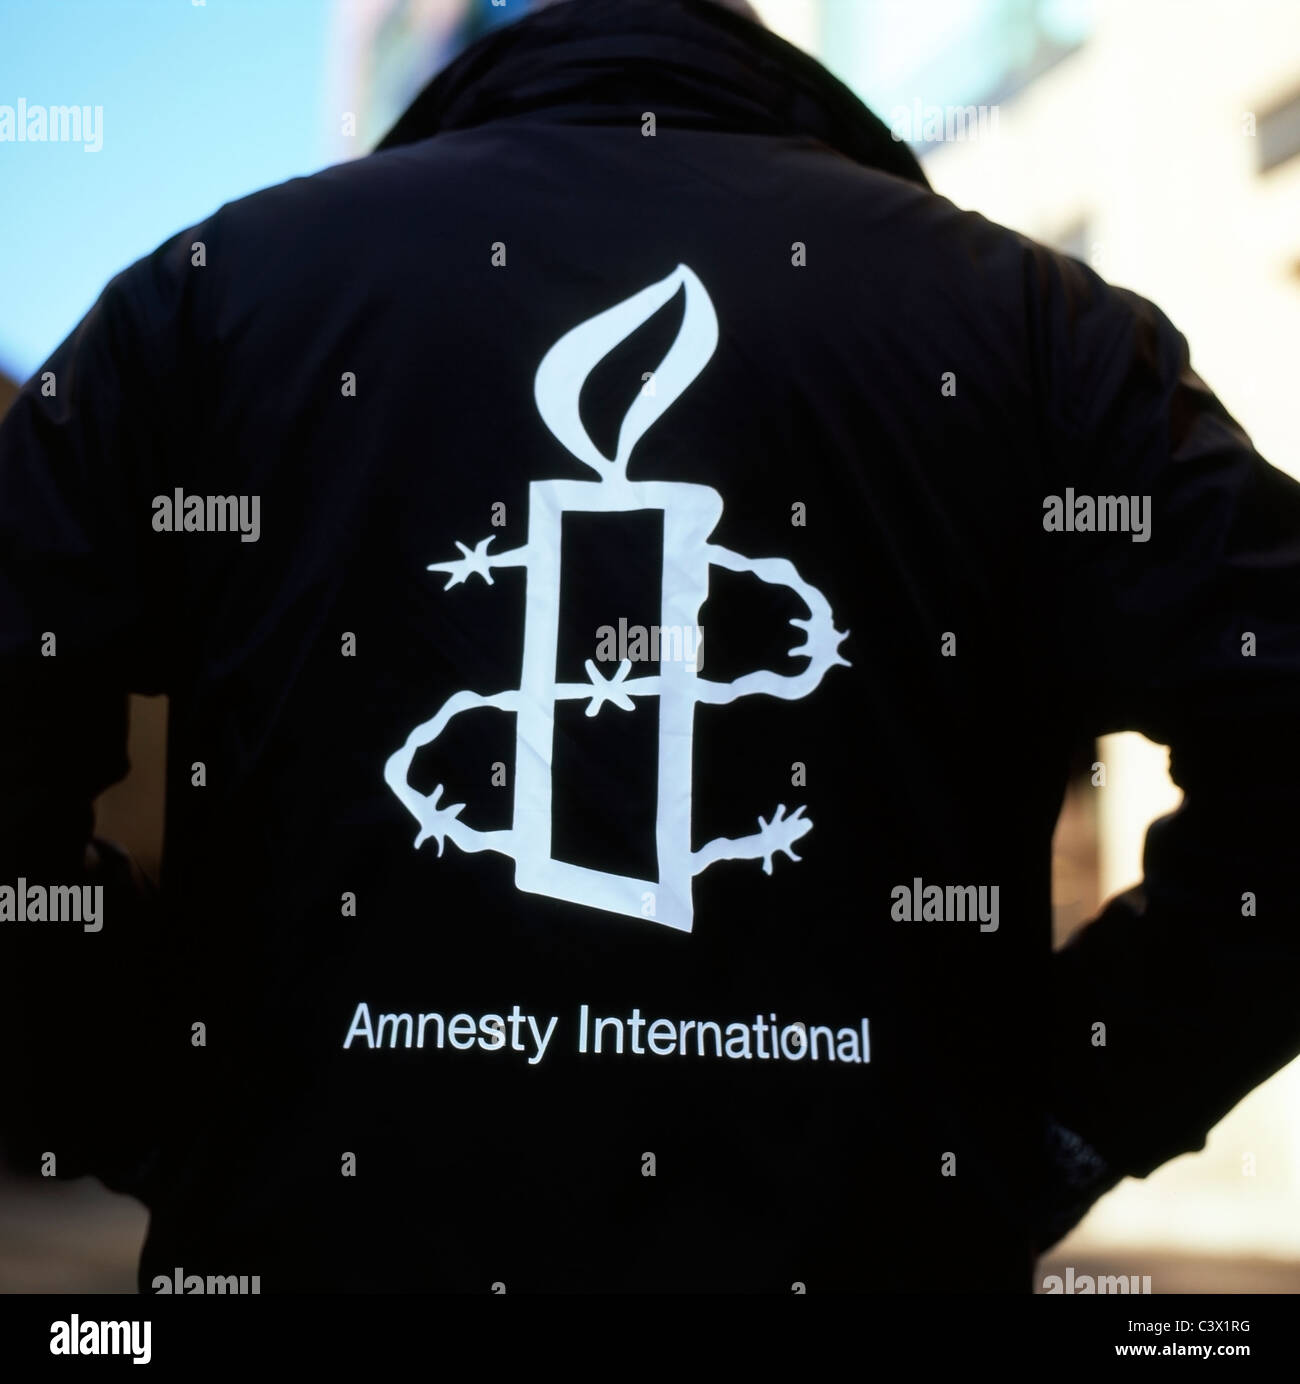 Amnesty International Logo On The Back Of A Charity Workers Jacket